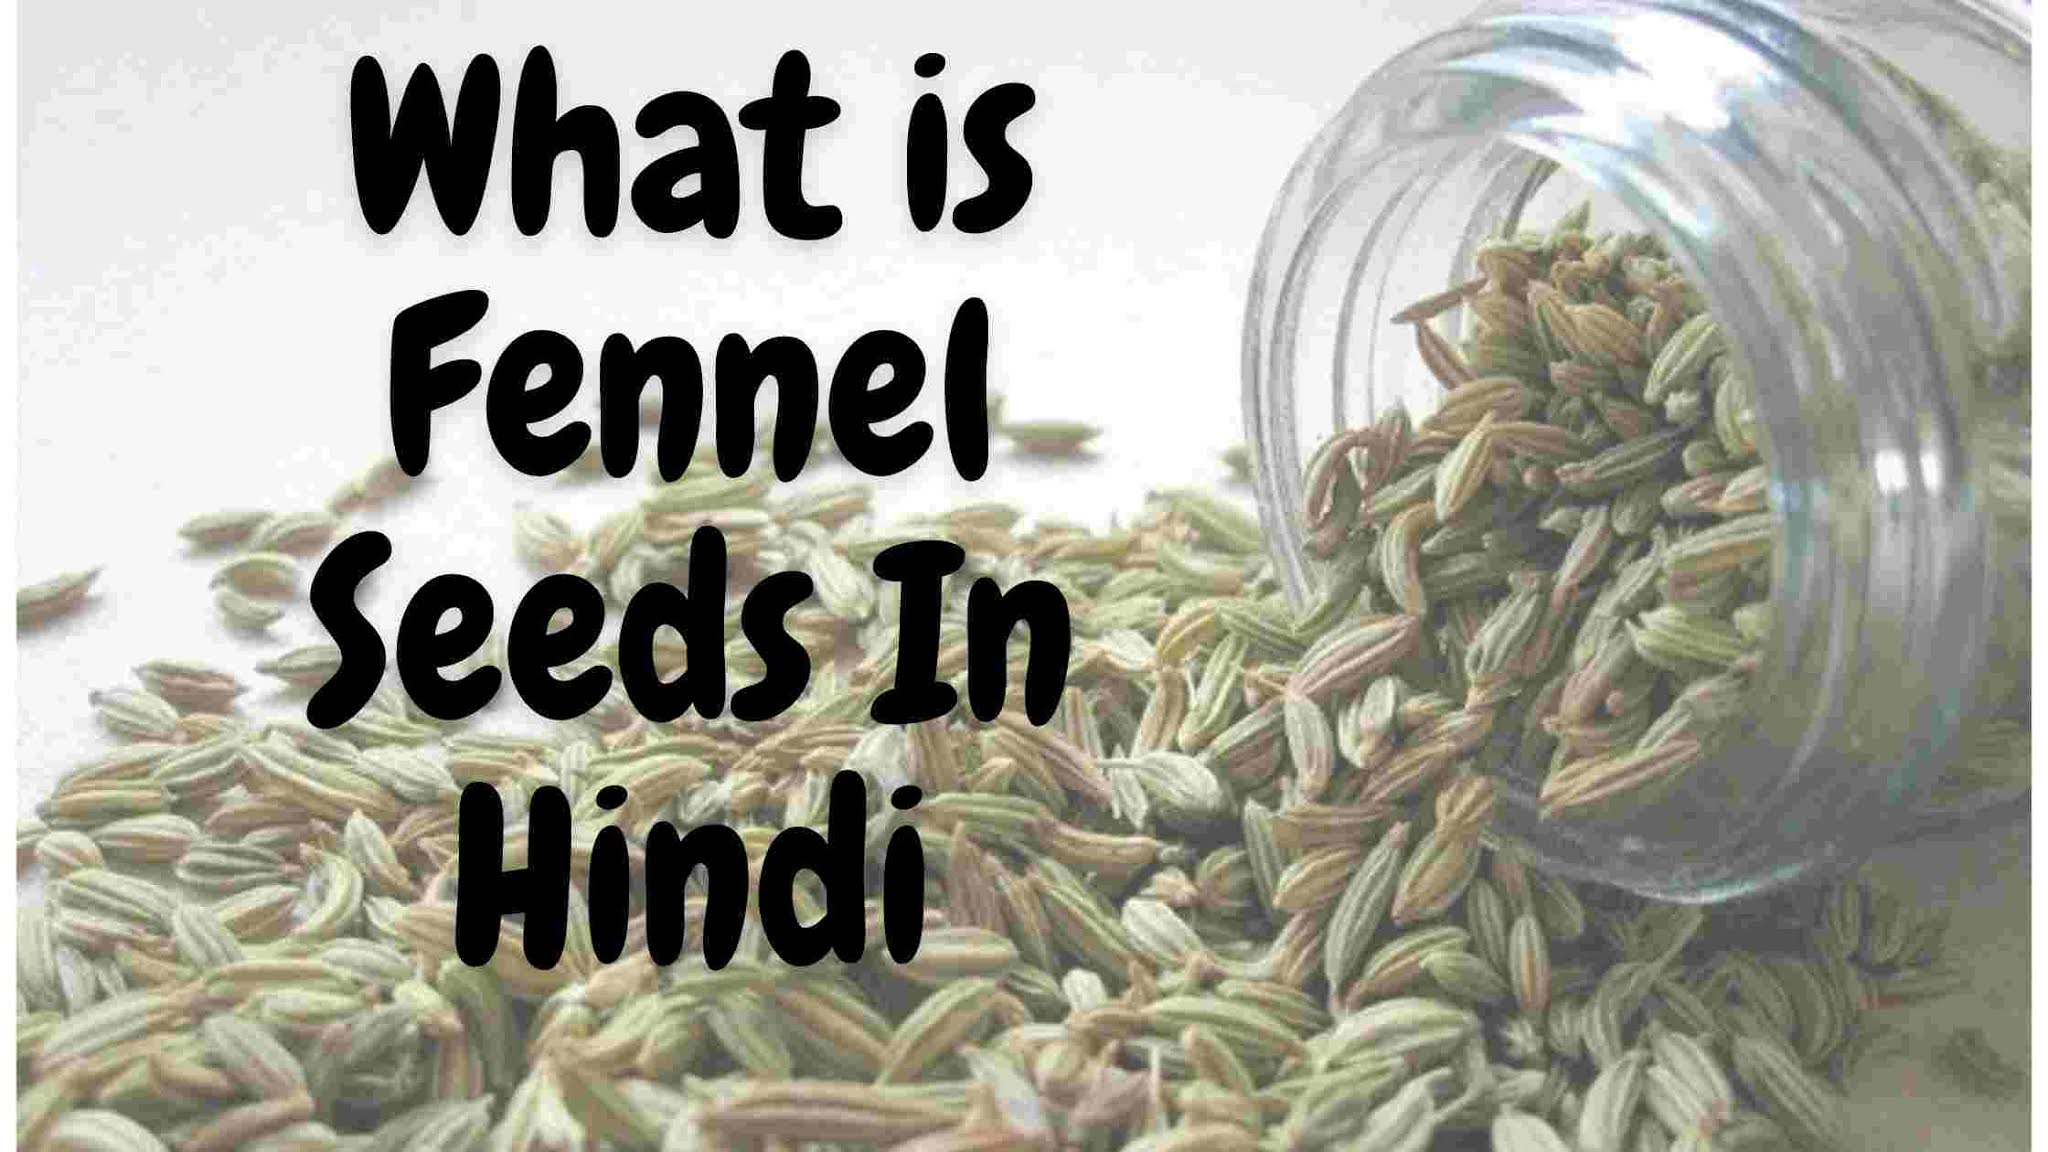 What-is-fennel-seeds-in-Hindi